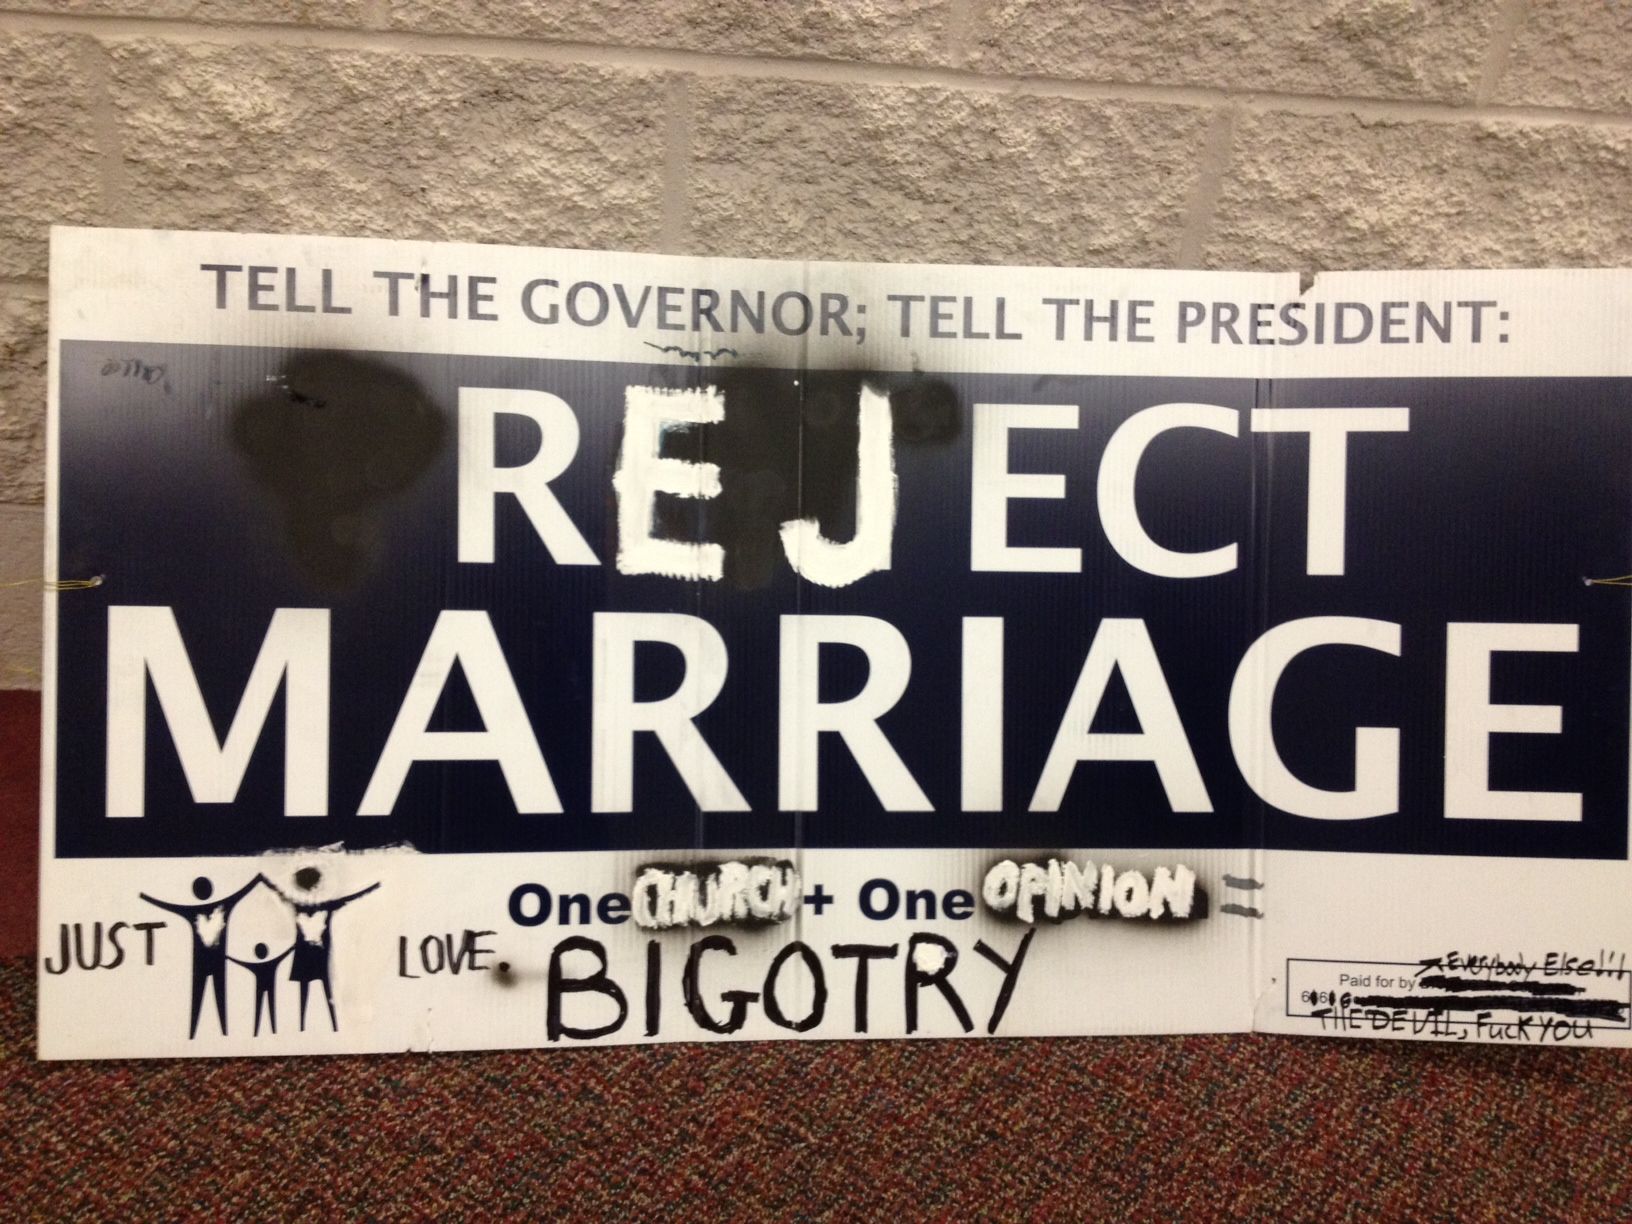 An example of sign vandalism provided by Protect Marriage Maryland.